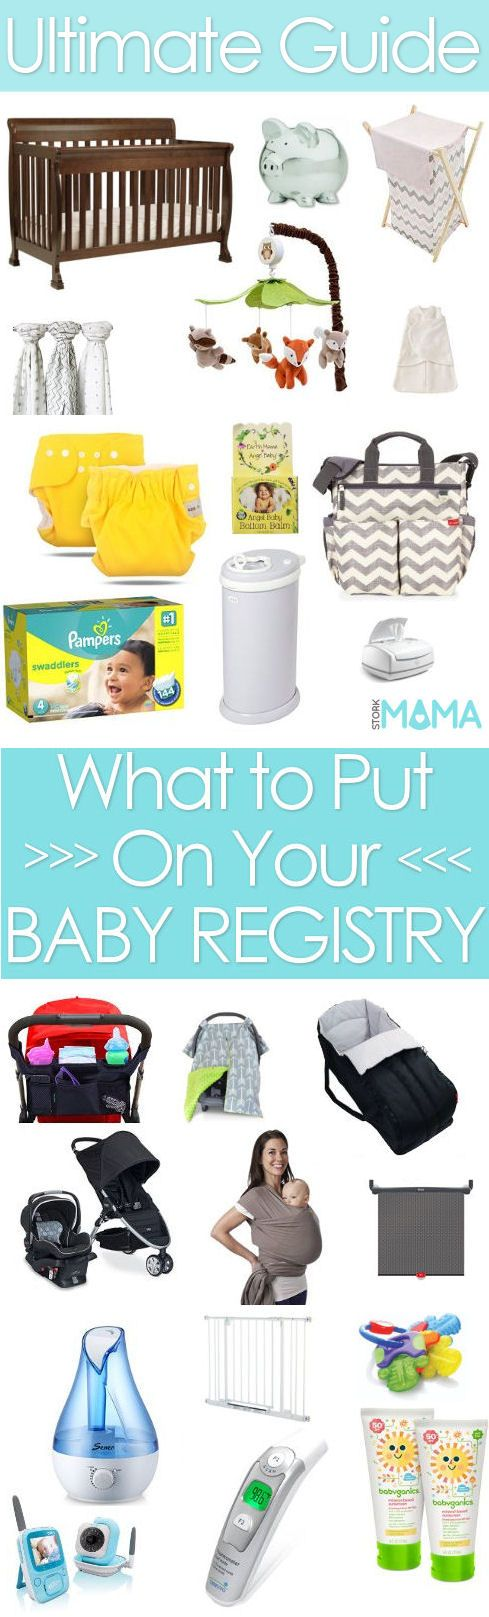 Learn what to put on a baby registry. We've taken the hassle out of searching for you. Learn what's essential or nice to have for your baby's arrival.